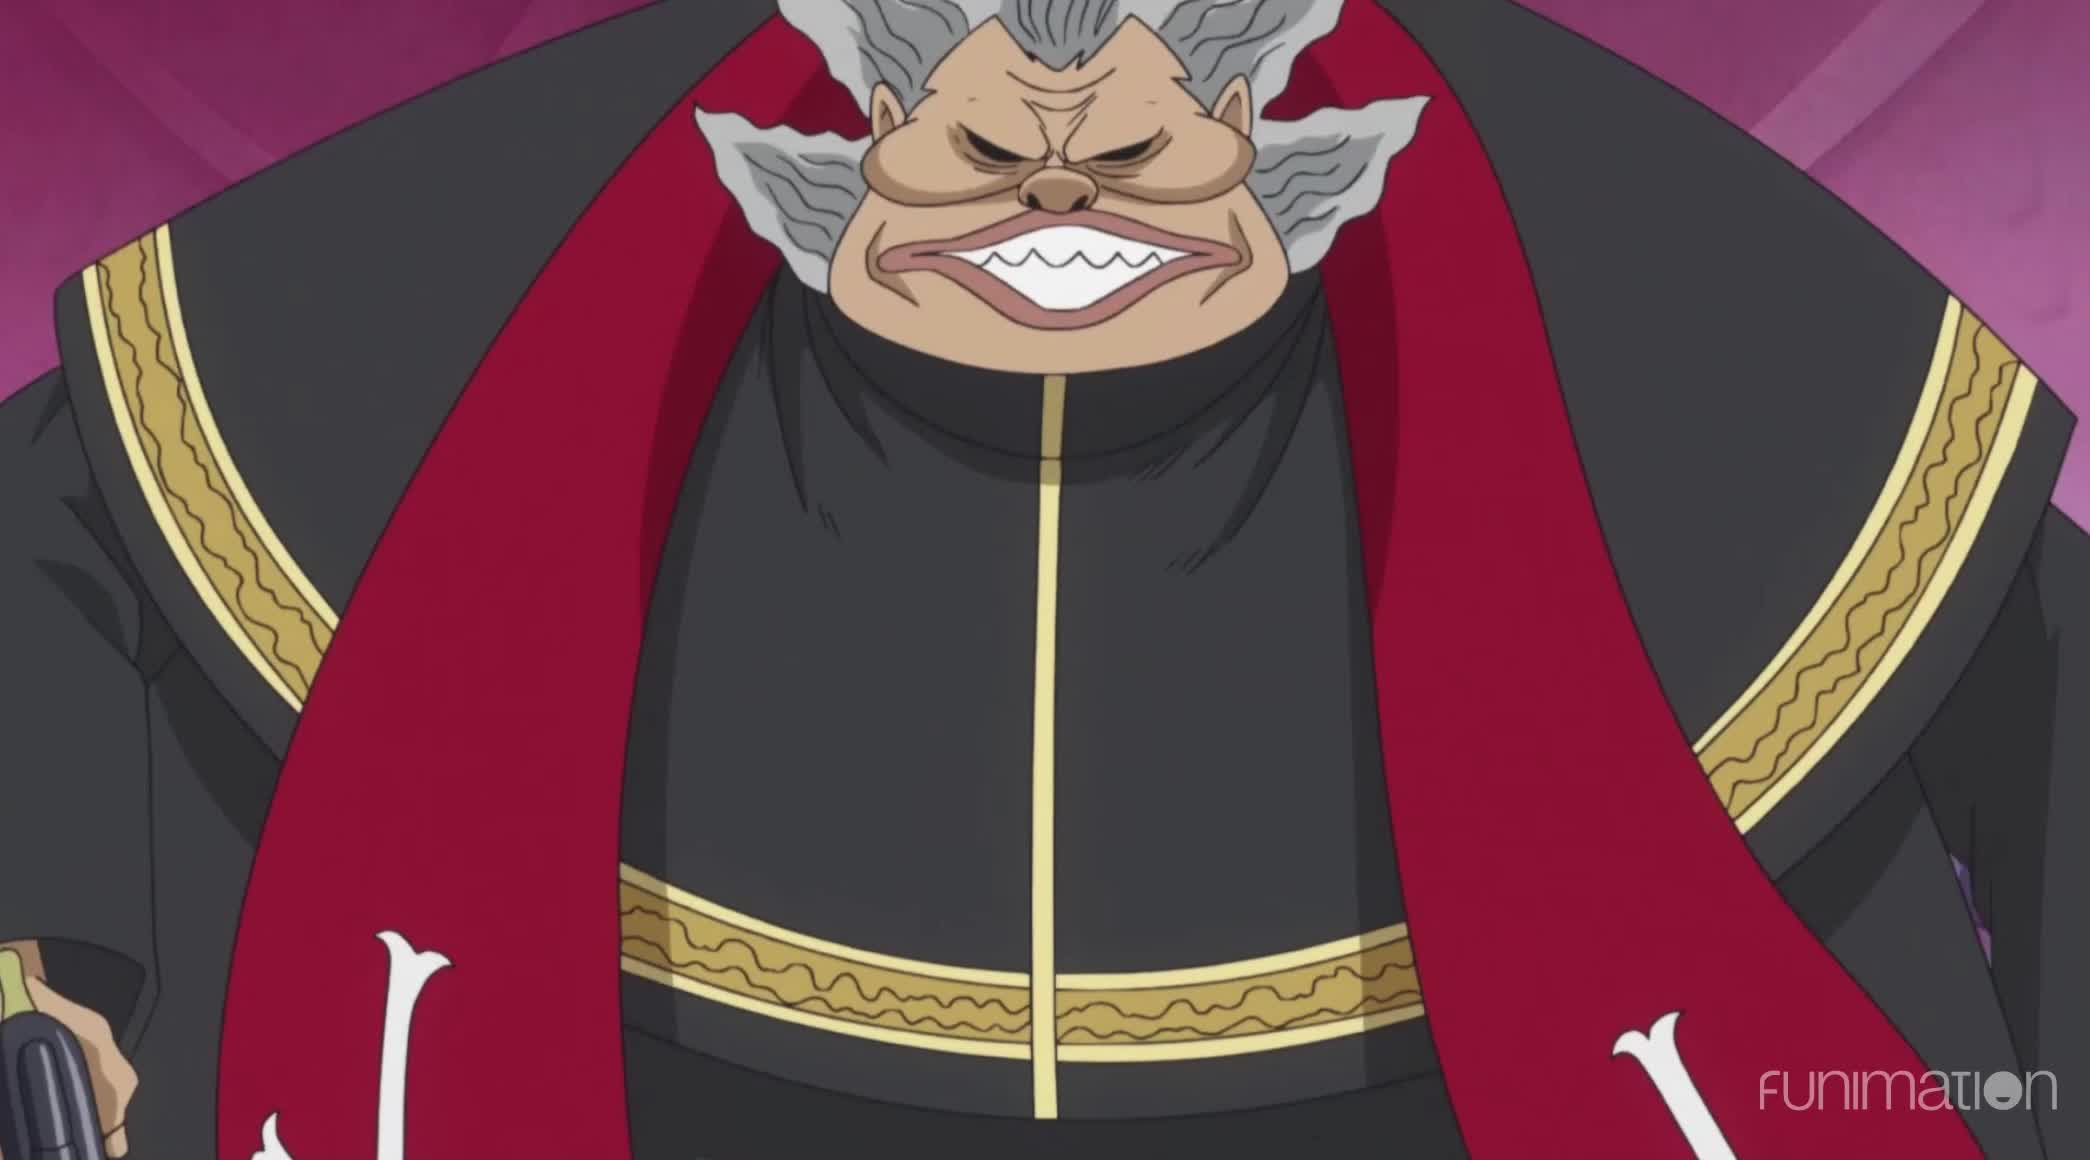 One Piece Episode 832 Gifs Search | Search & Share on Homdor